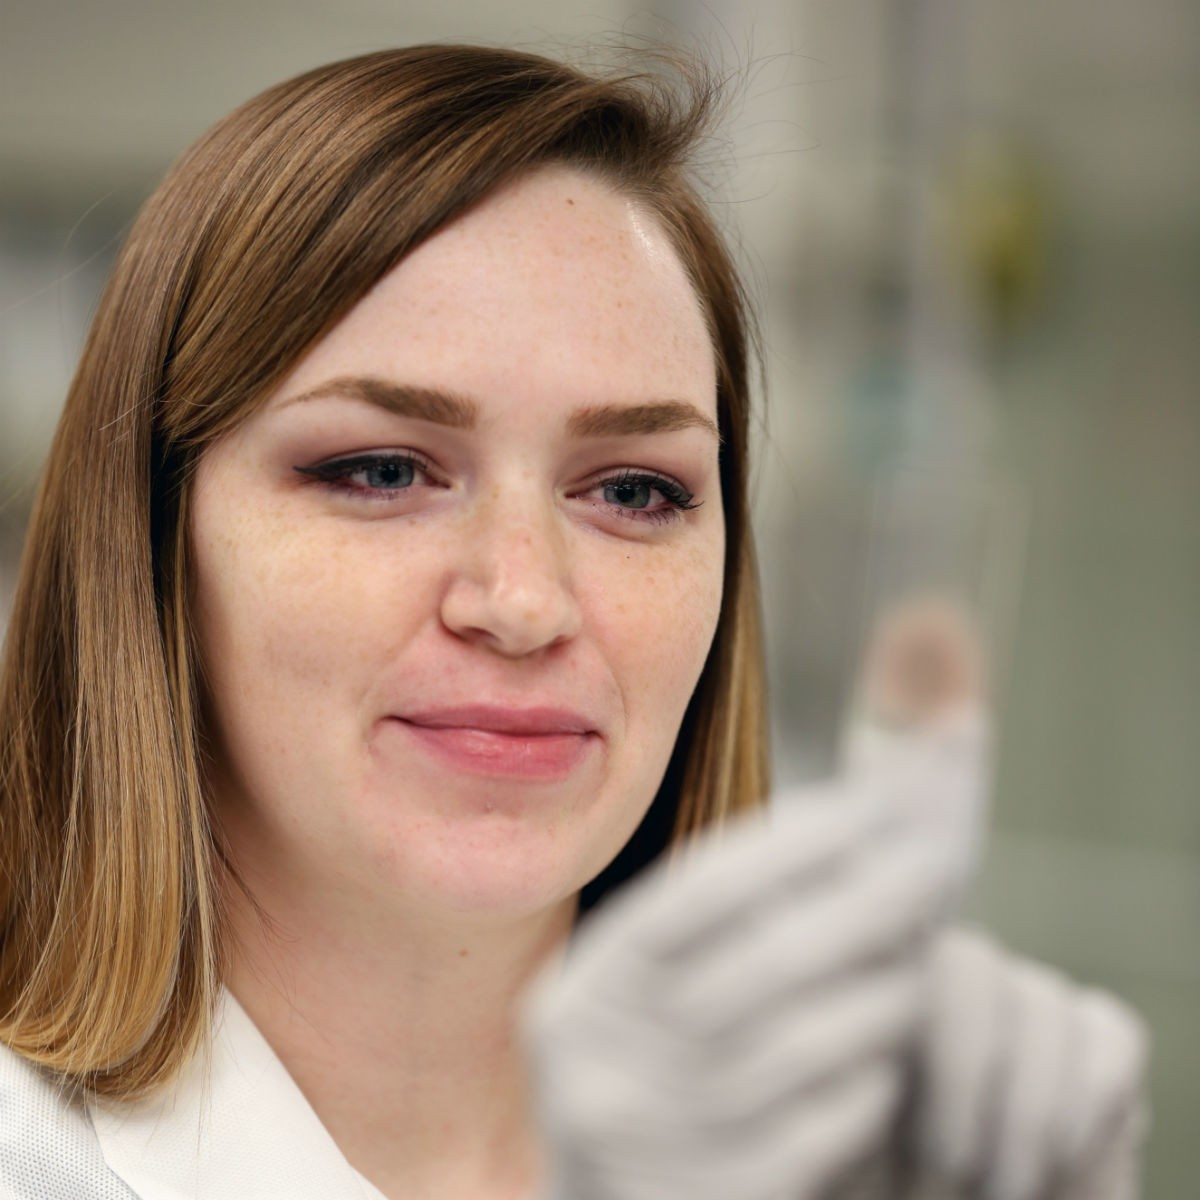 Alexa Miller knew she wanted to go into the medical field, but it was her participation in a 12-month Medical Laboratory Science (MLS) training program at Mercy Hospital Ardmore last year that solidified her decision.